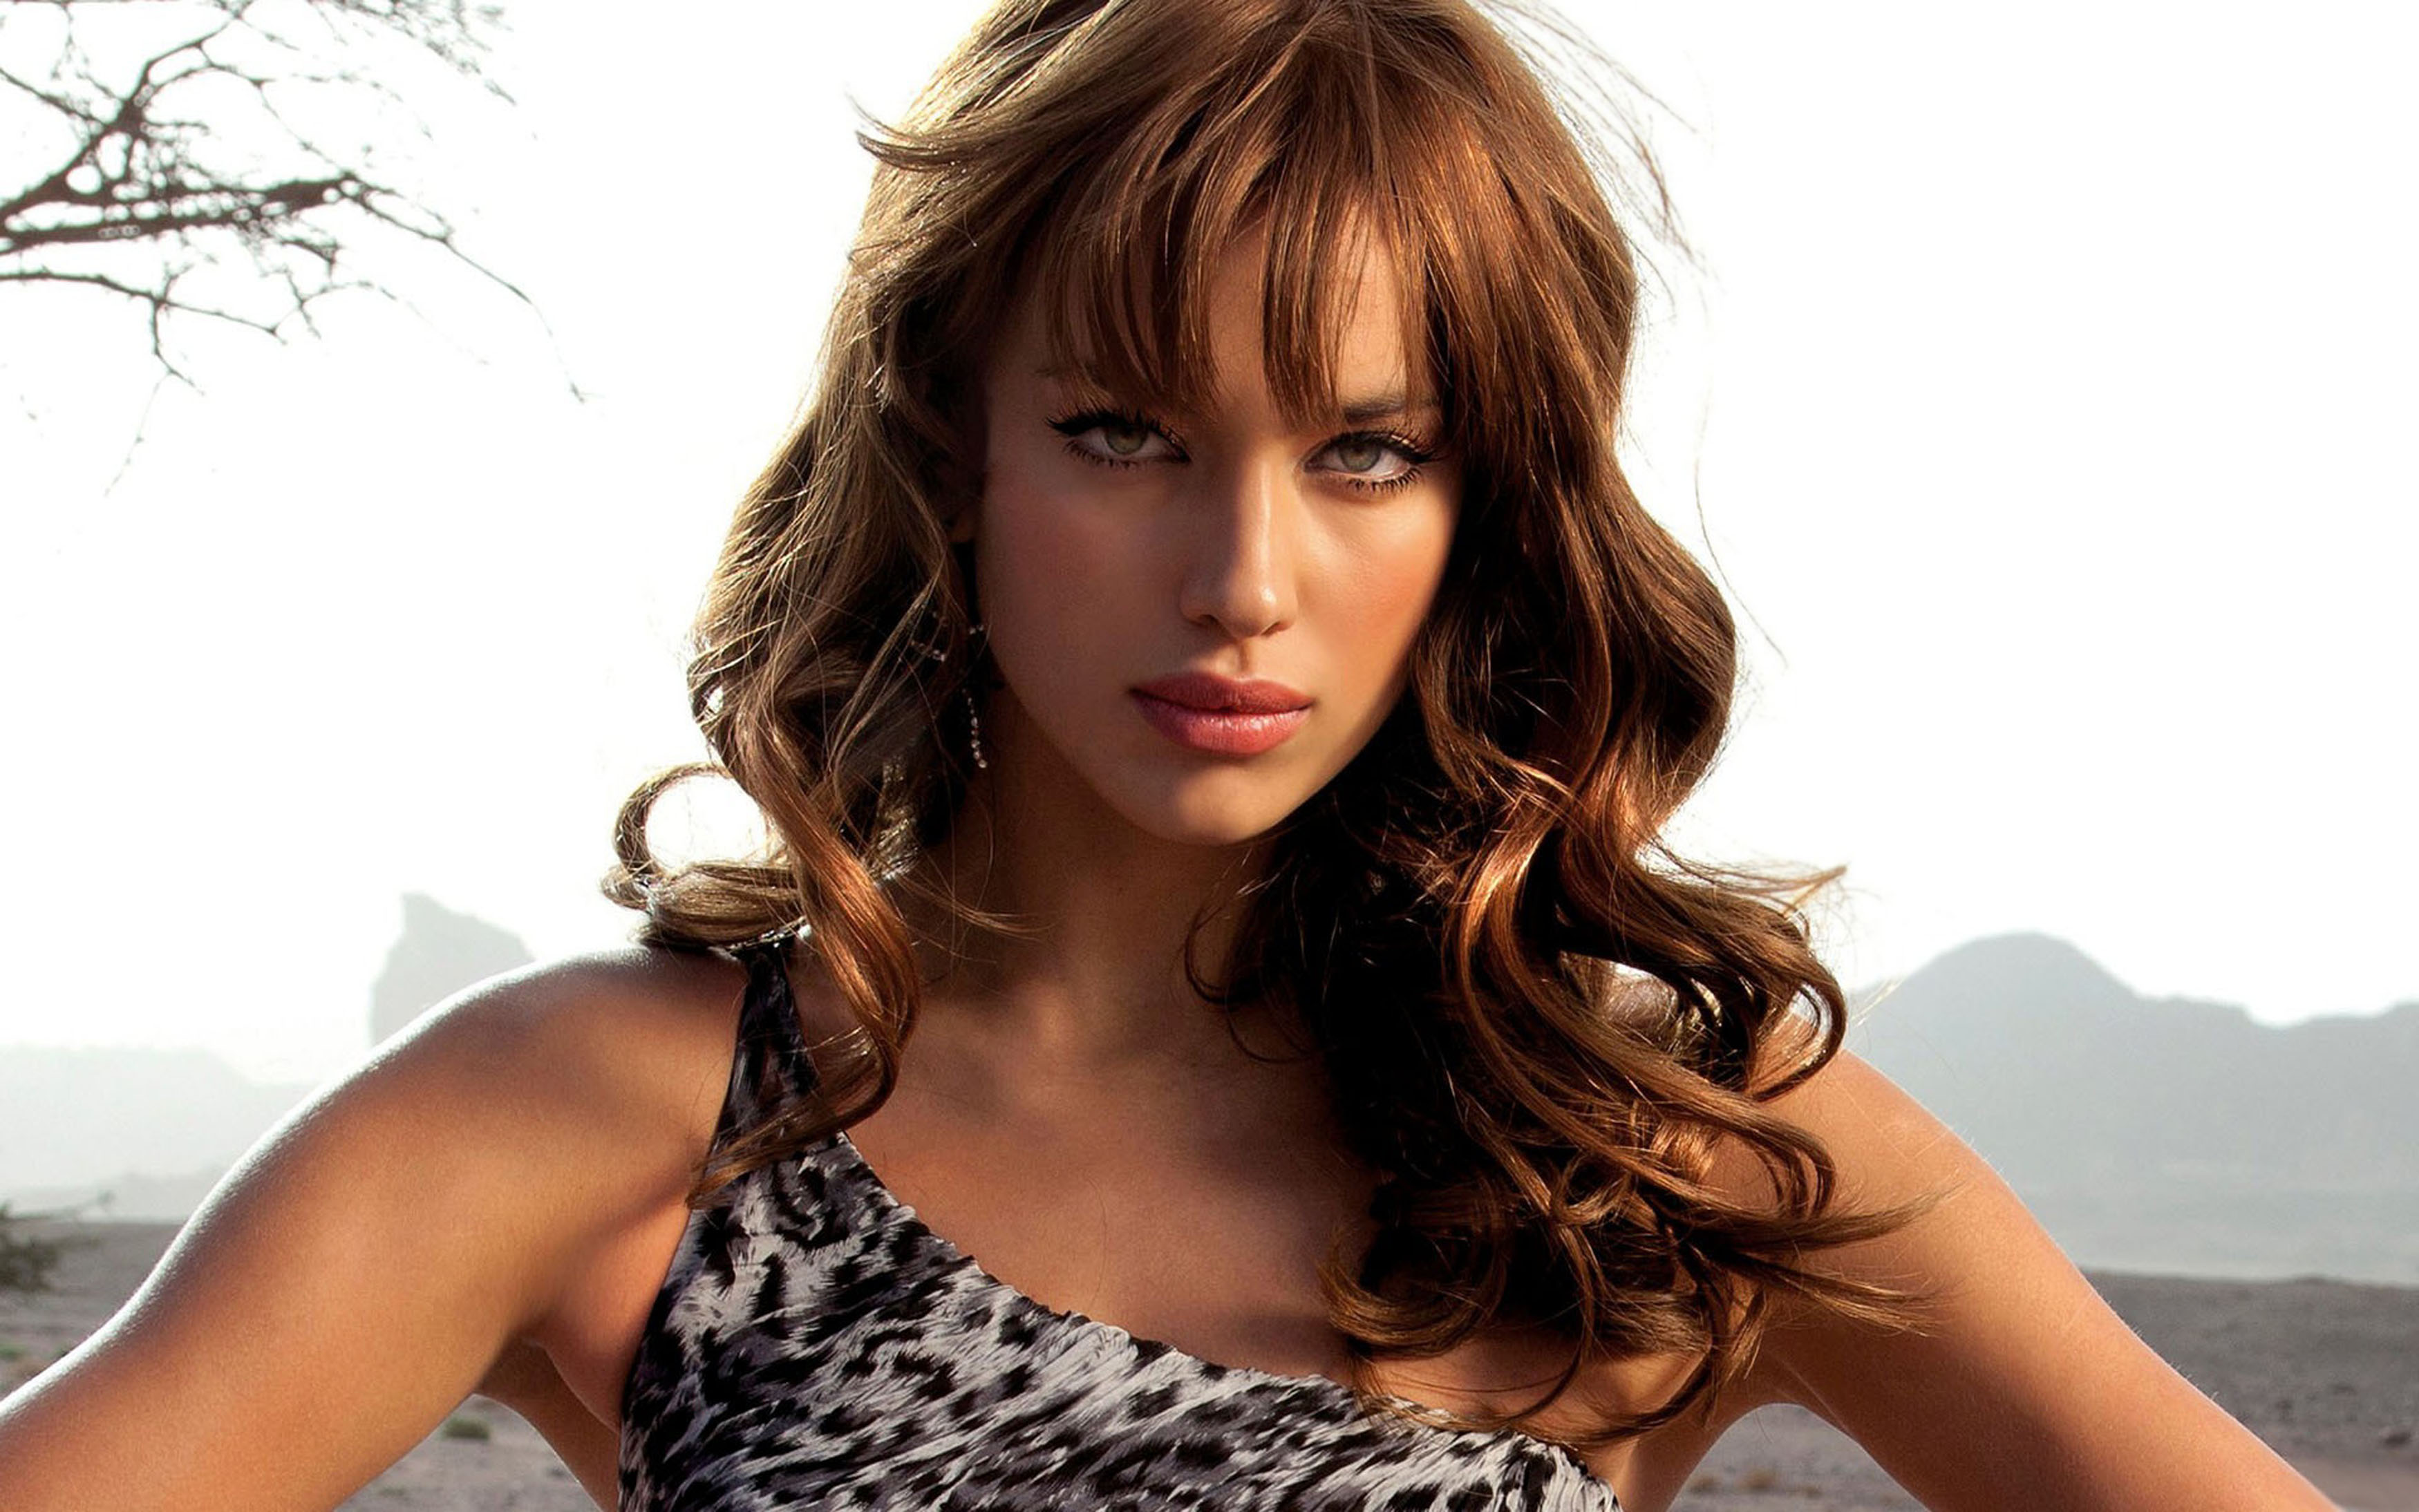 Irina Shayk Wallpapers High Resolution And Quality Download